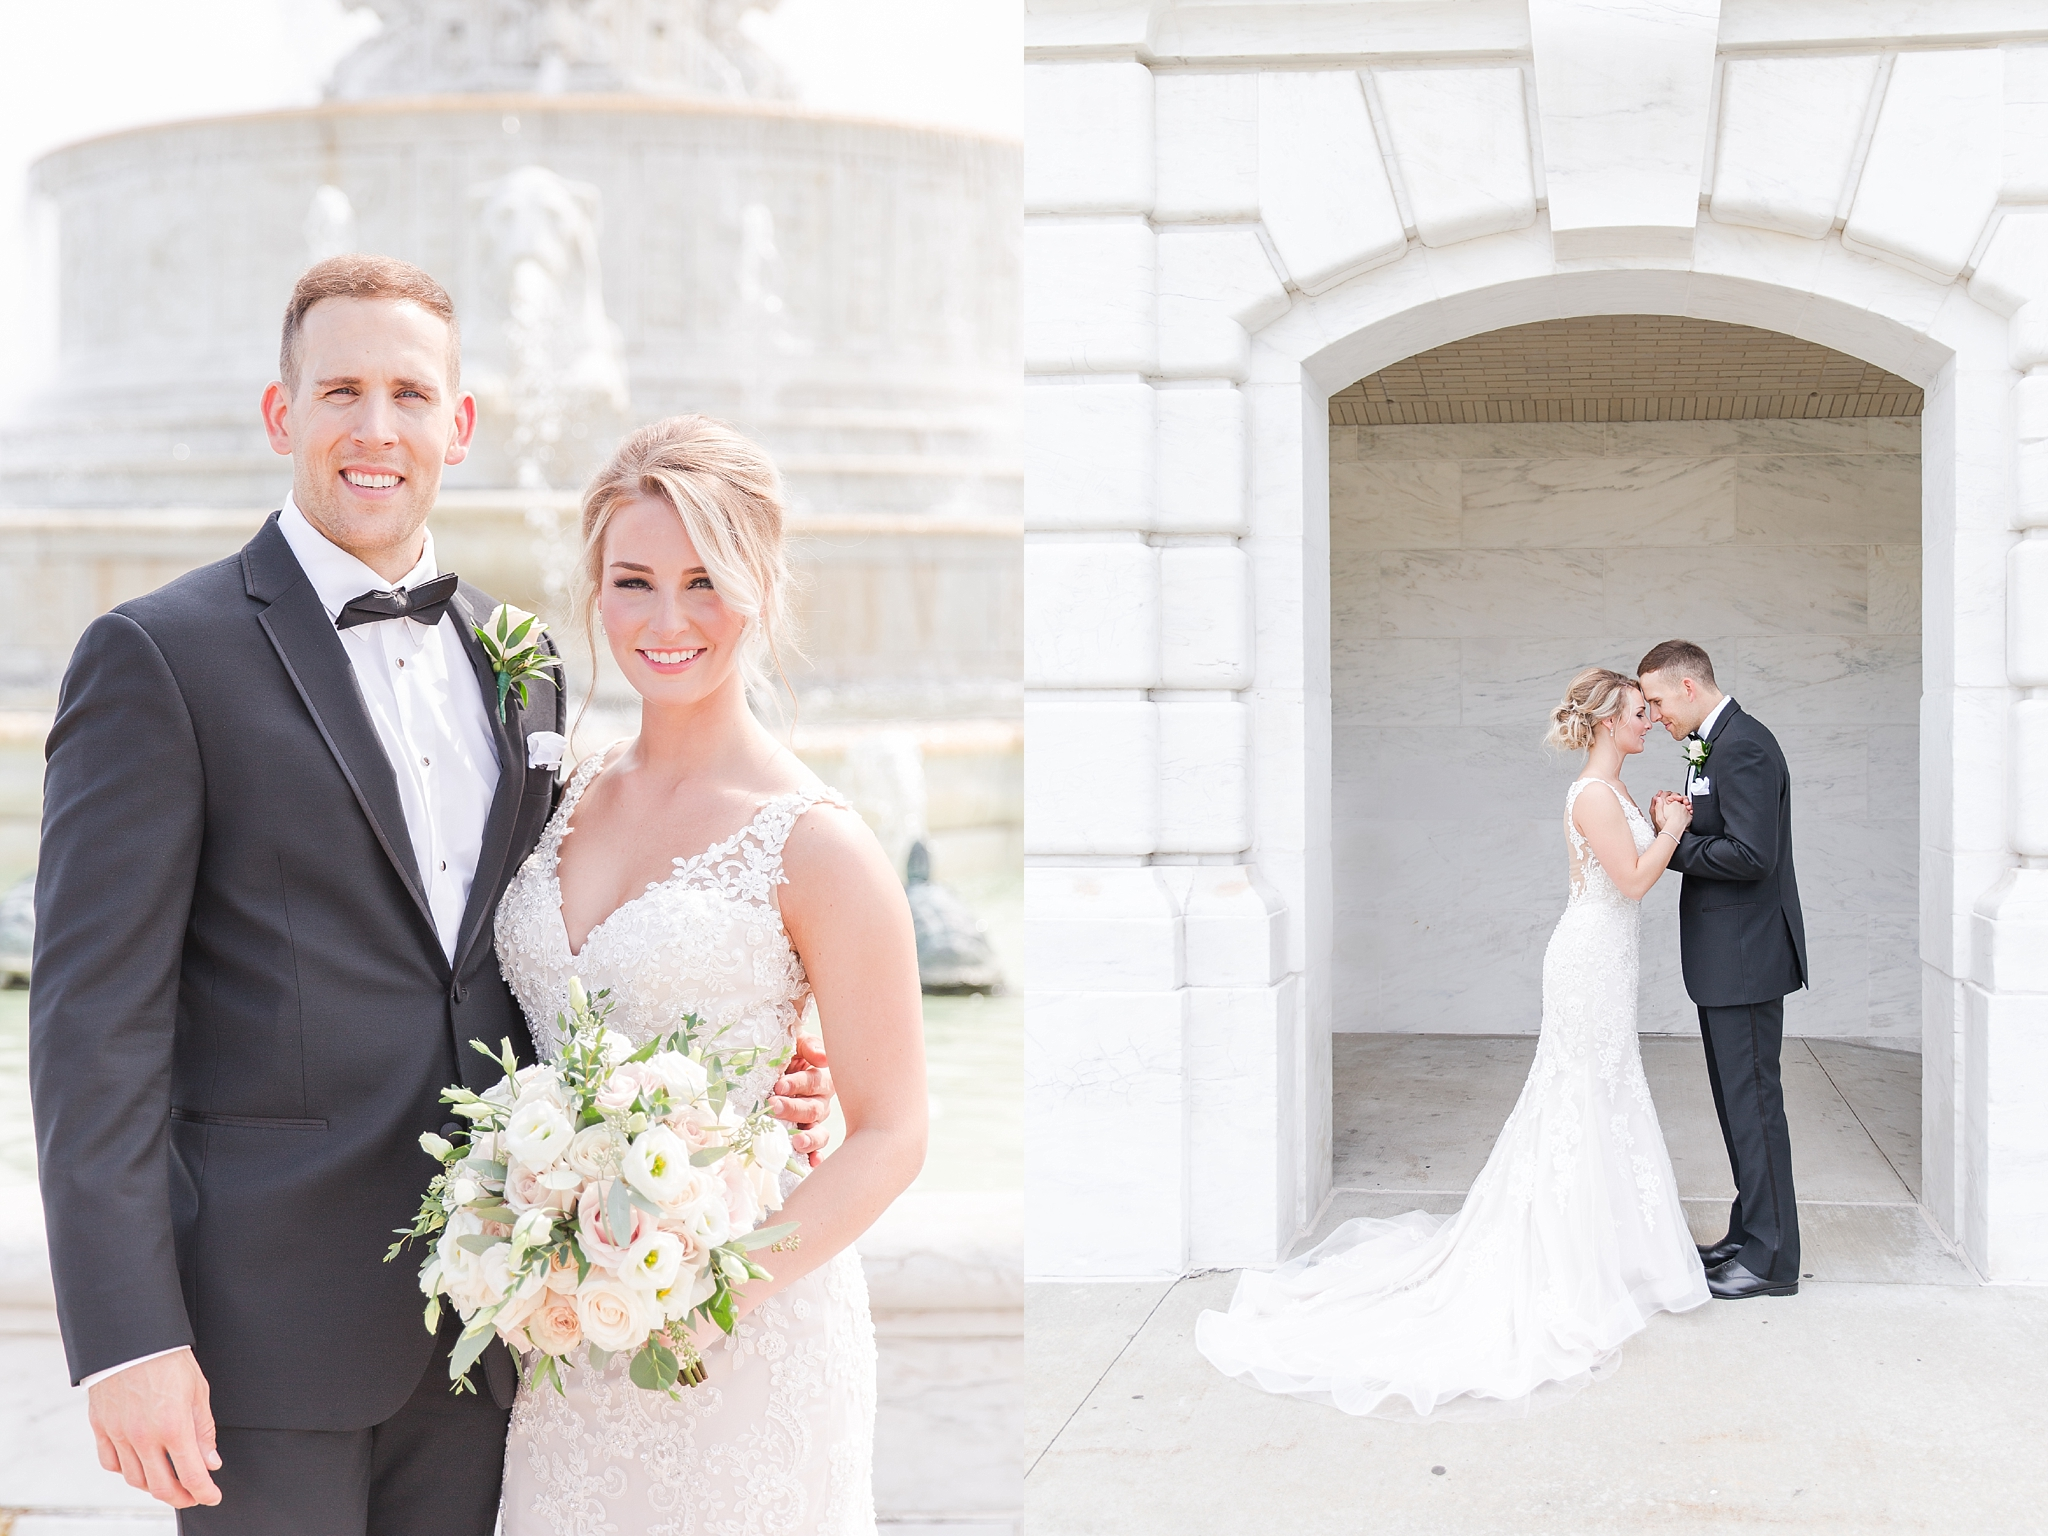 candid-romantic-wedding-photos-at-the-masonic-temple-belle-isle-detroit-institute-of-arts-in-detroit-michigan-by-courtney-carolyn-photography_0030.jpg